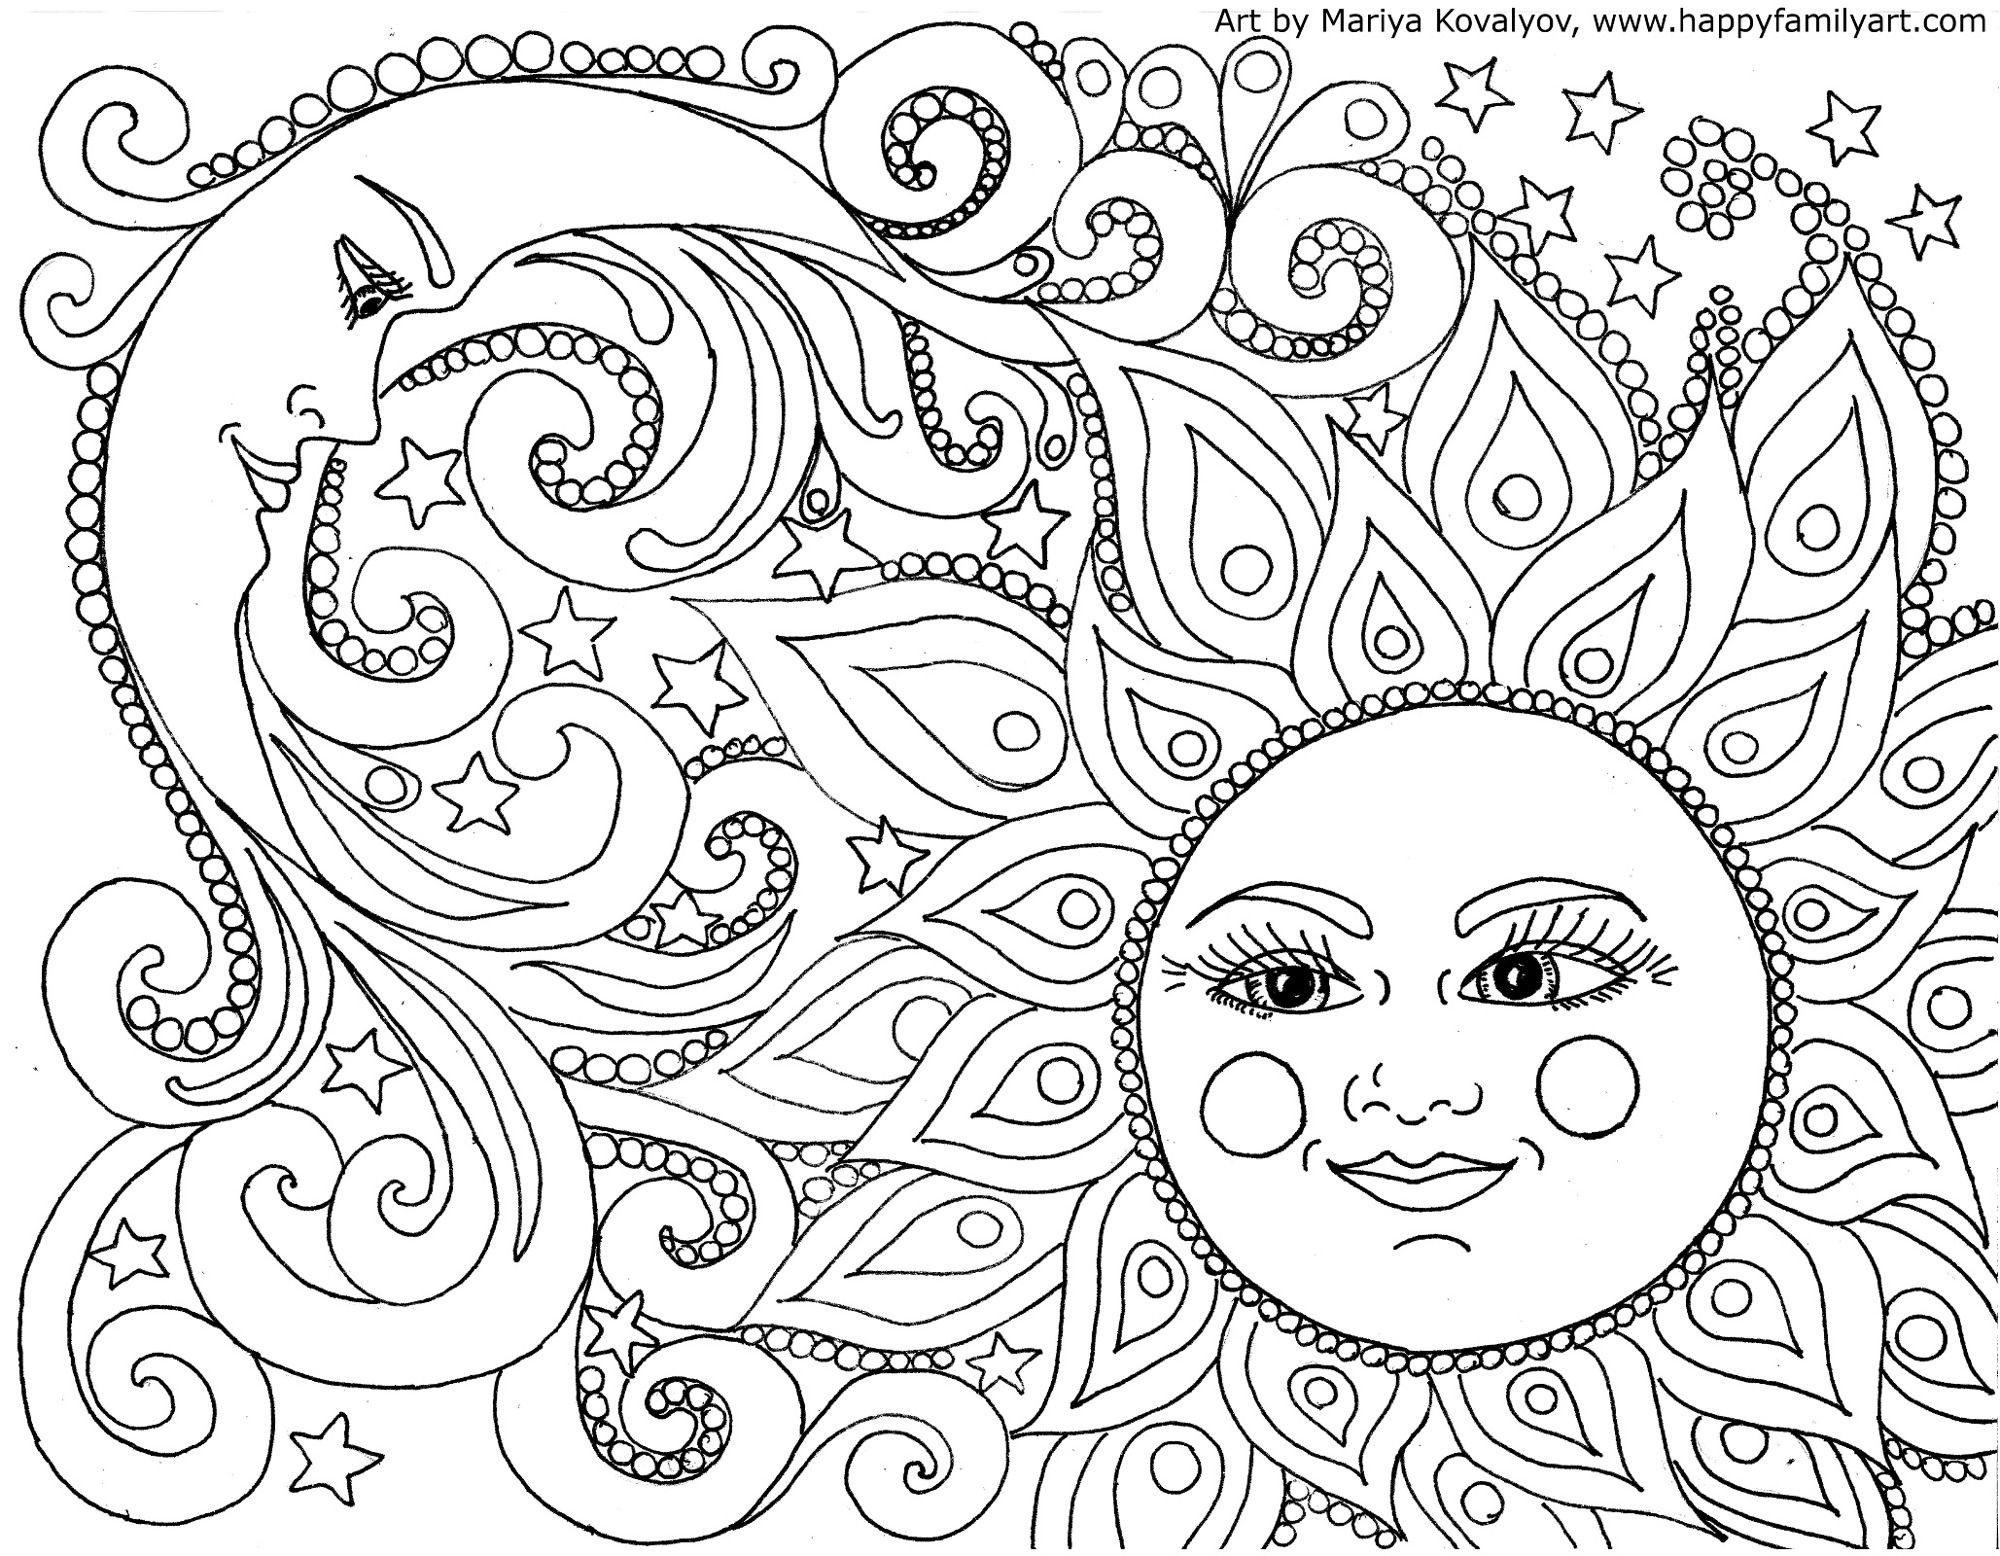 2000x1556 Coloring Pages Mandala Fresh Art Therapy Colouring Book Pages